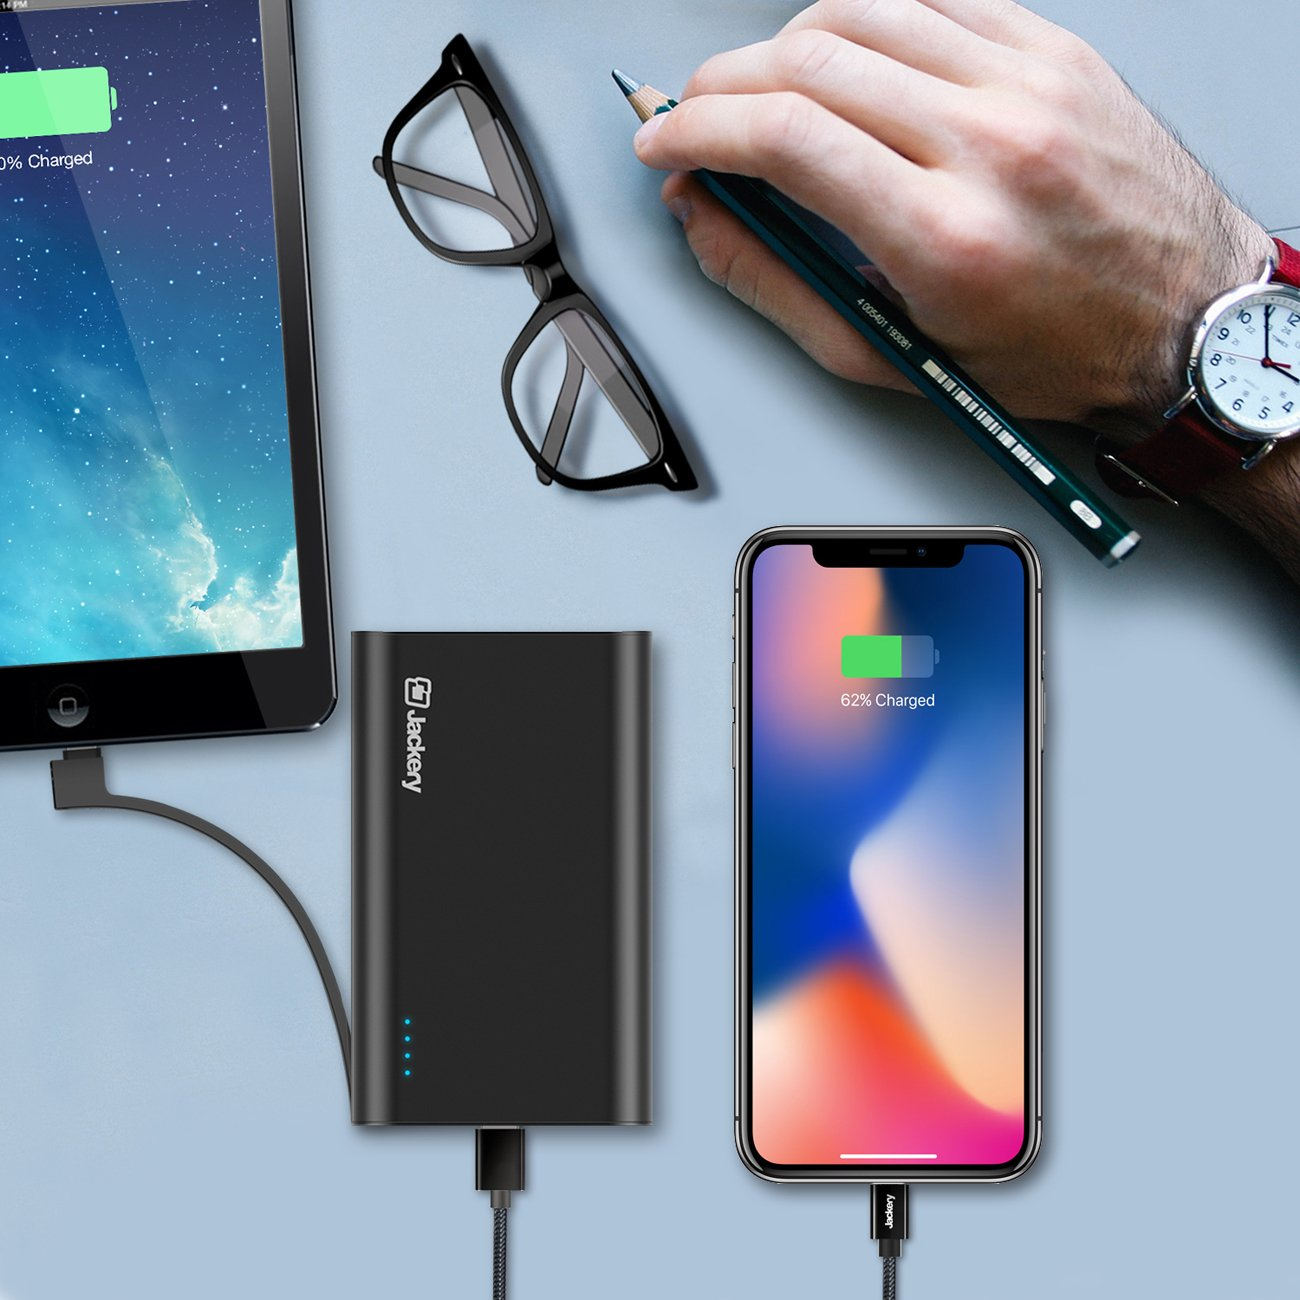 Jackery Bolt 10050mAh Power Bank, Portable Charger with Built-in [MFi certified] Lightning Cable External Battery Pack for iPhone X, iPhone 8/8Plus etc, TWICE as FAST as Original iPhone Charger by Jackery (Image #6)